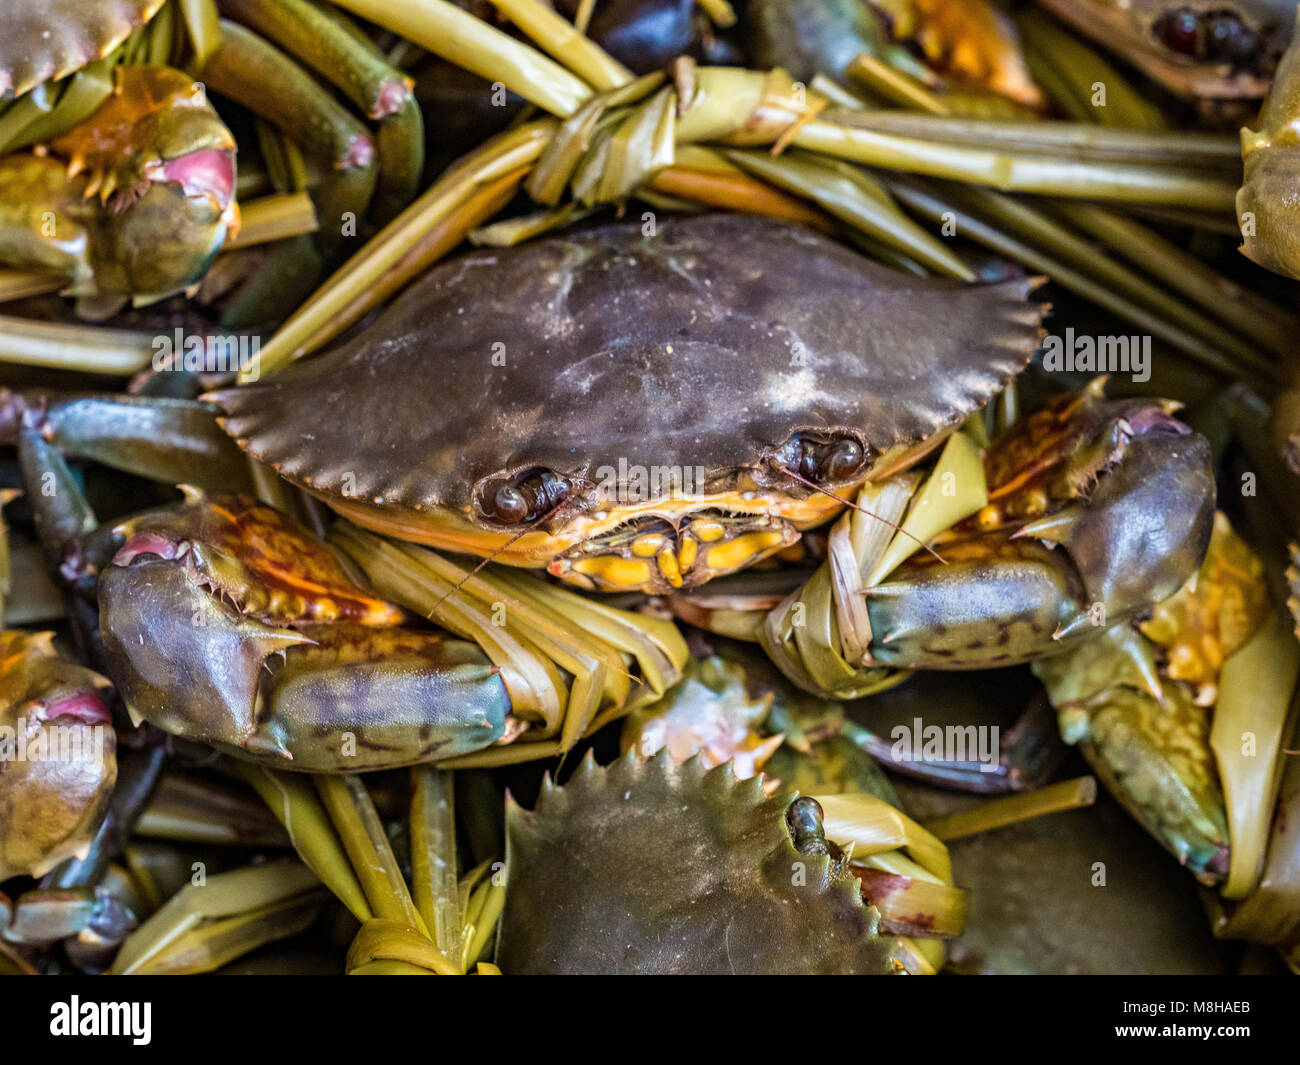 Live Crab tied up for purchase in the Hong Kong fishing village of Tai O - Stock Image